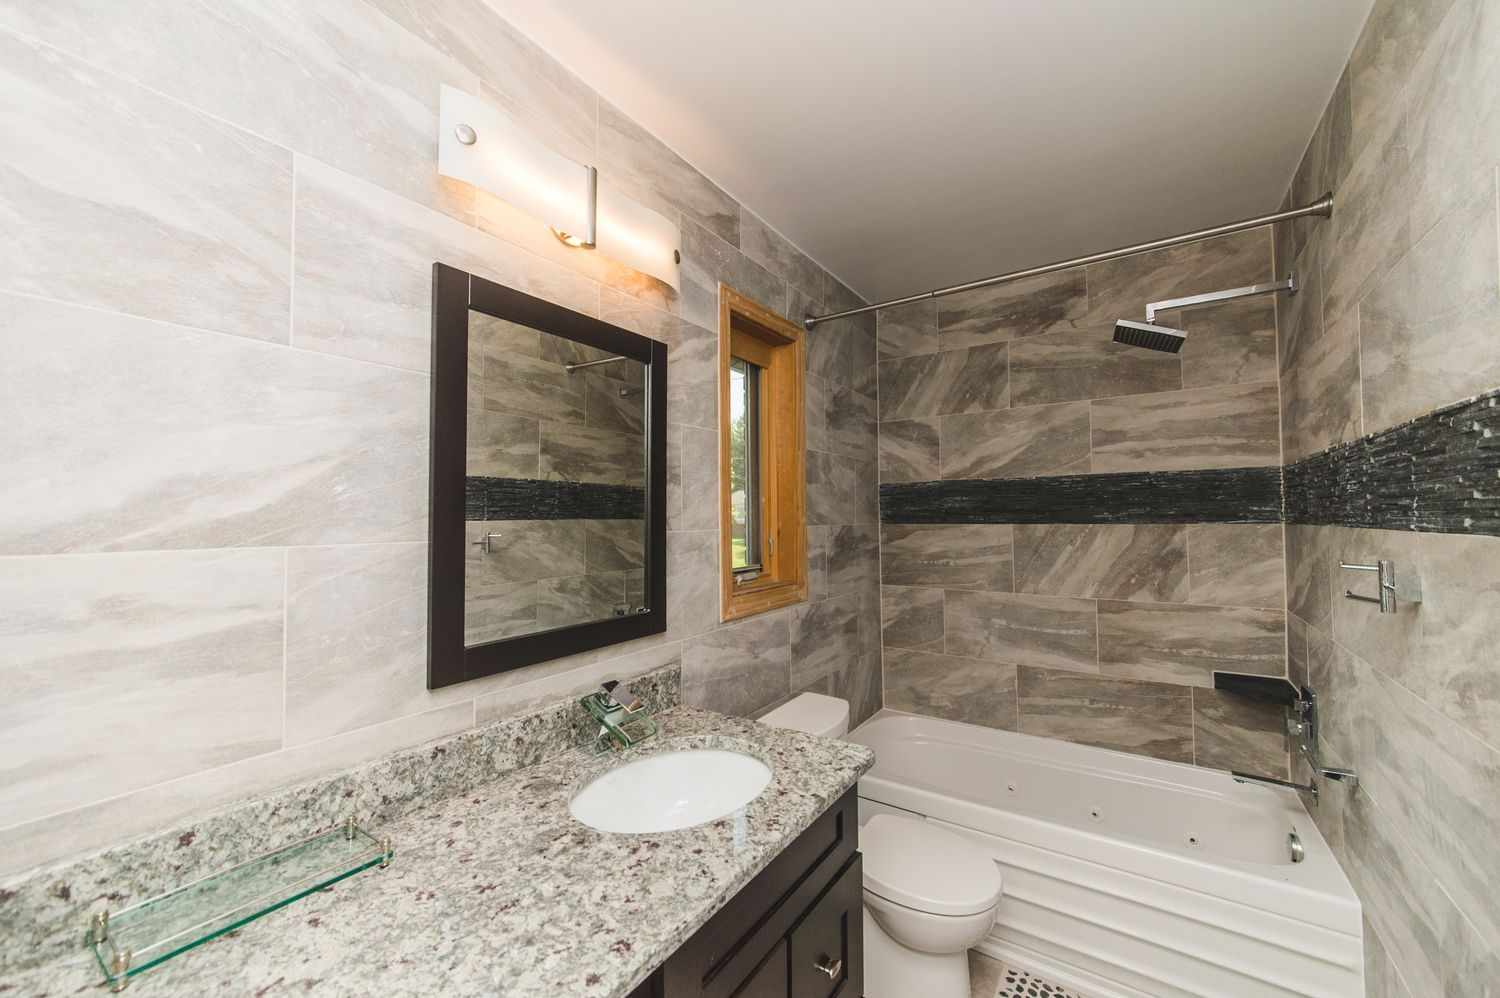 Kitchen Remodeling Silver Spring Md Cabinet Door Replacement Lowes Bathroom Renovation By Euro